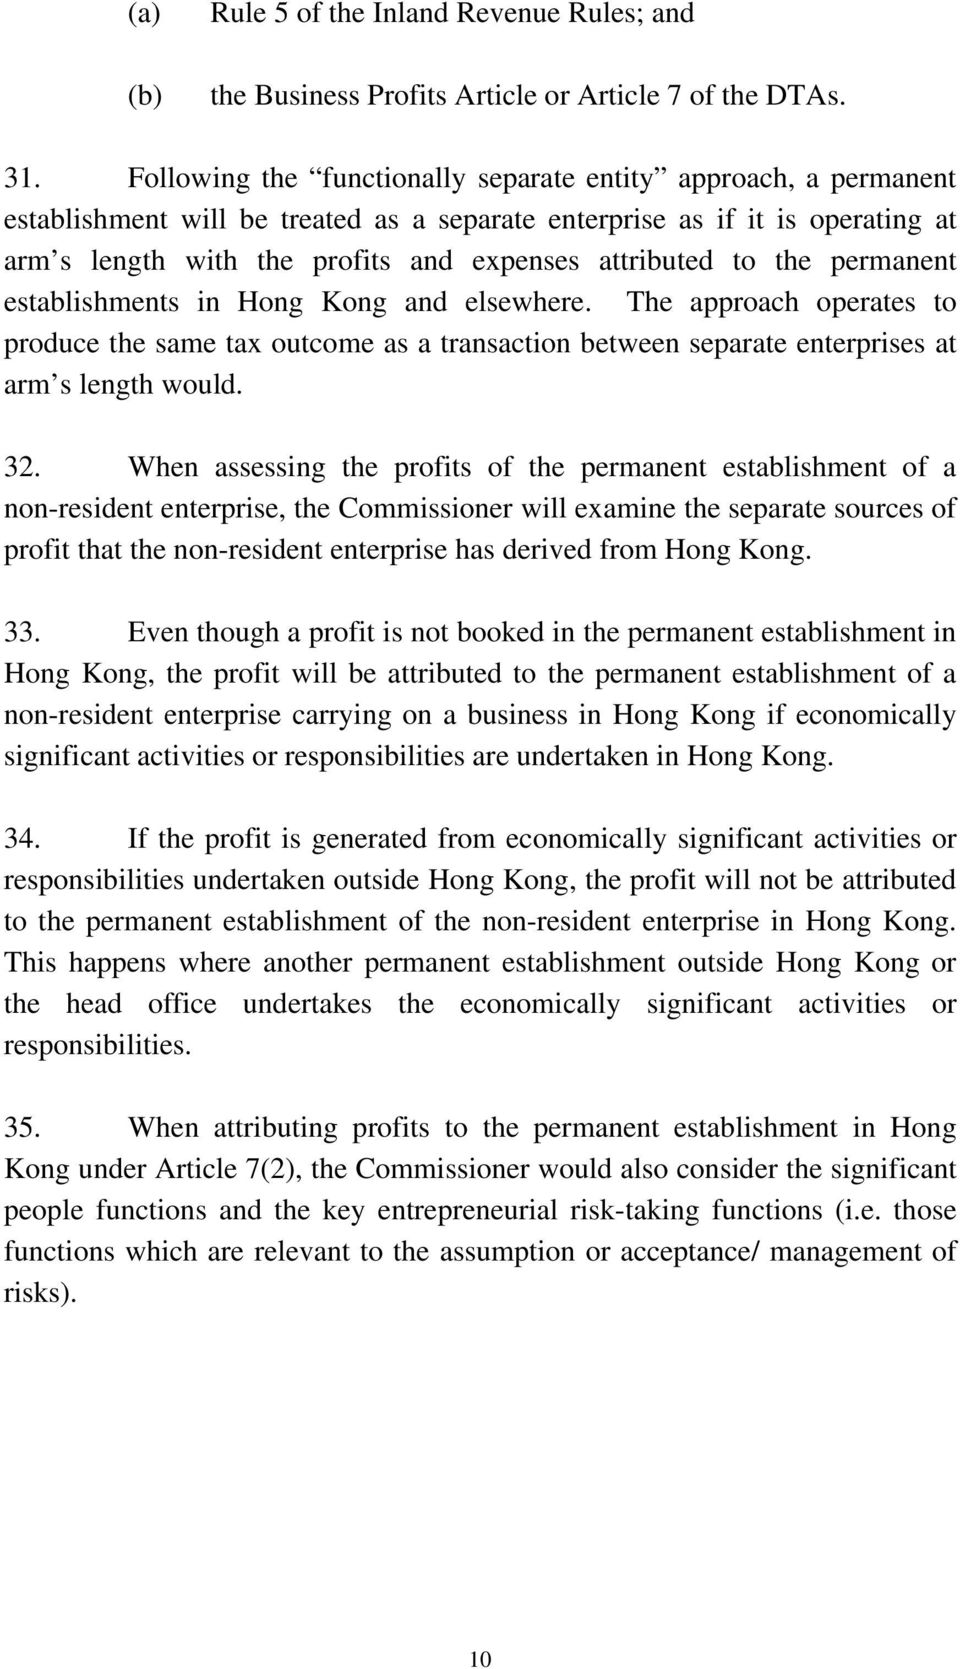 to the permanent establishments in Hong Kong and elsewhere. The approach operates to produce the same tax outcome as a transaction between separate enterprises at arm s length would. 32.